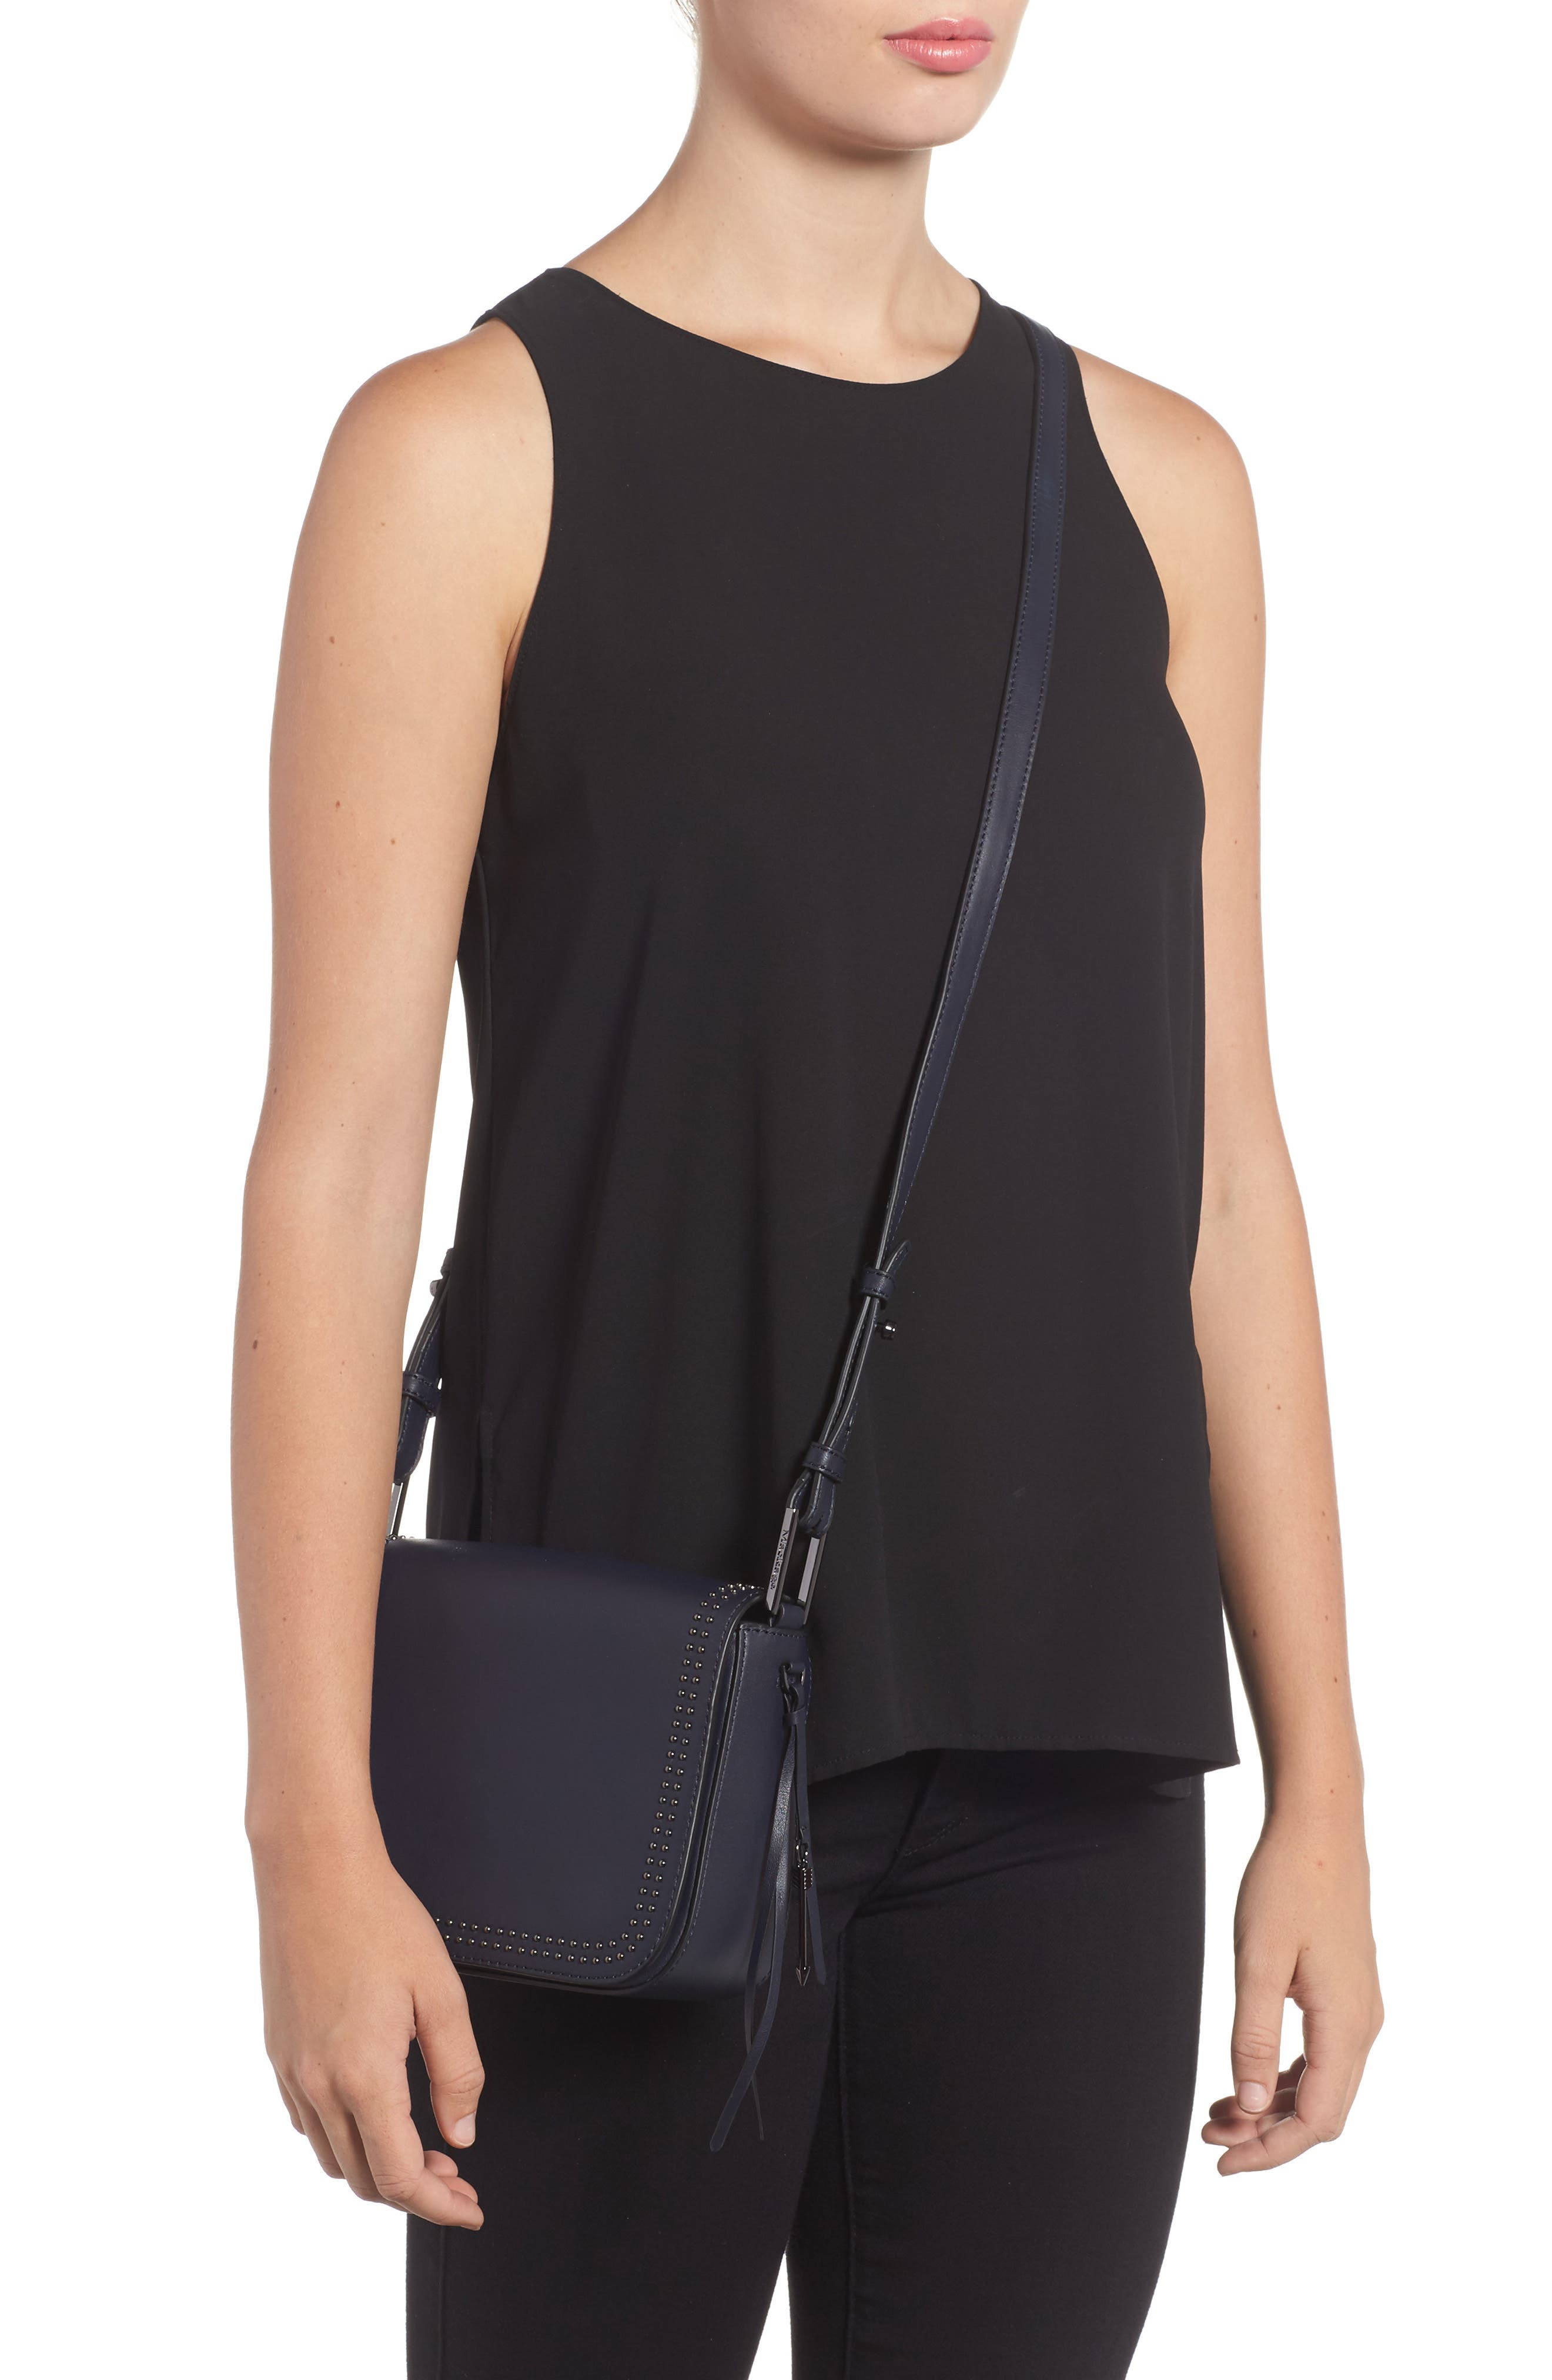 Dion Nappa Leather Crossbody Bag,                             Alternate thumbnail 2, color,                             481